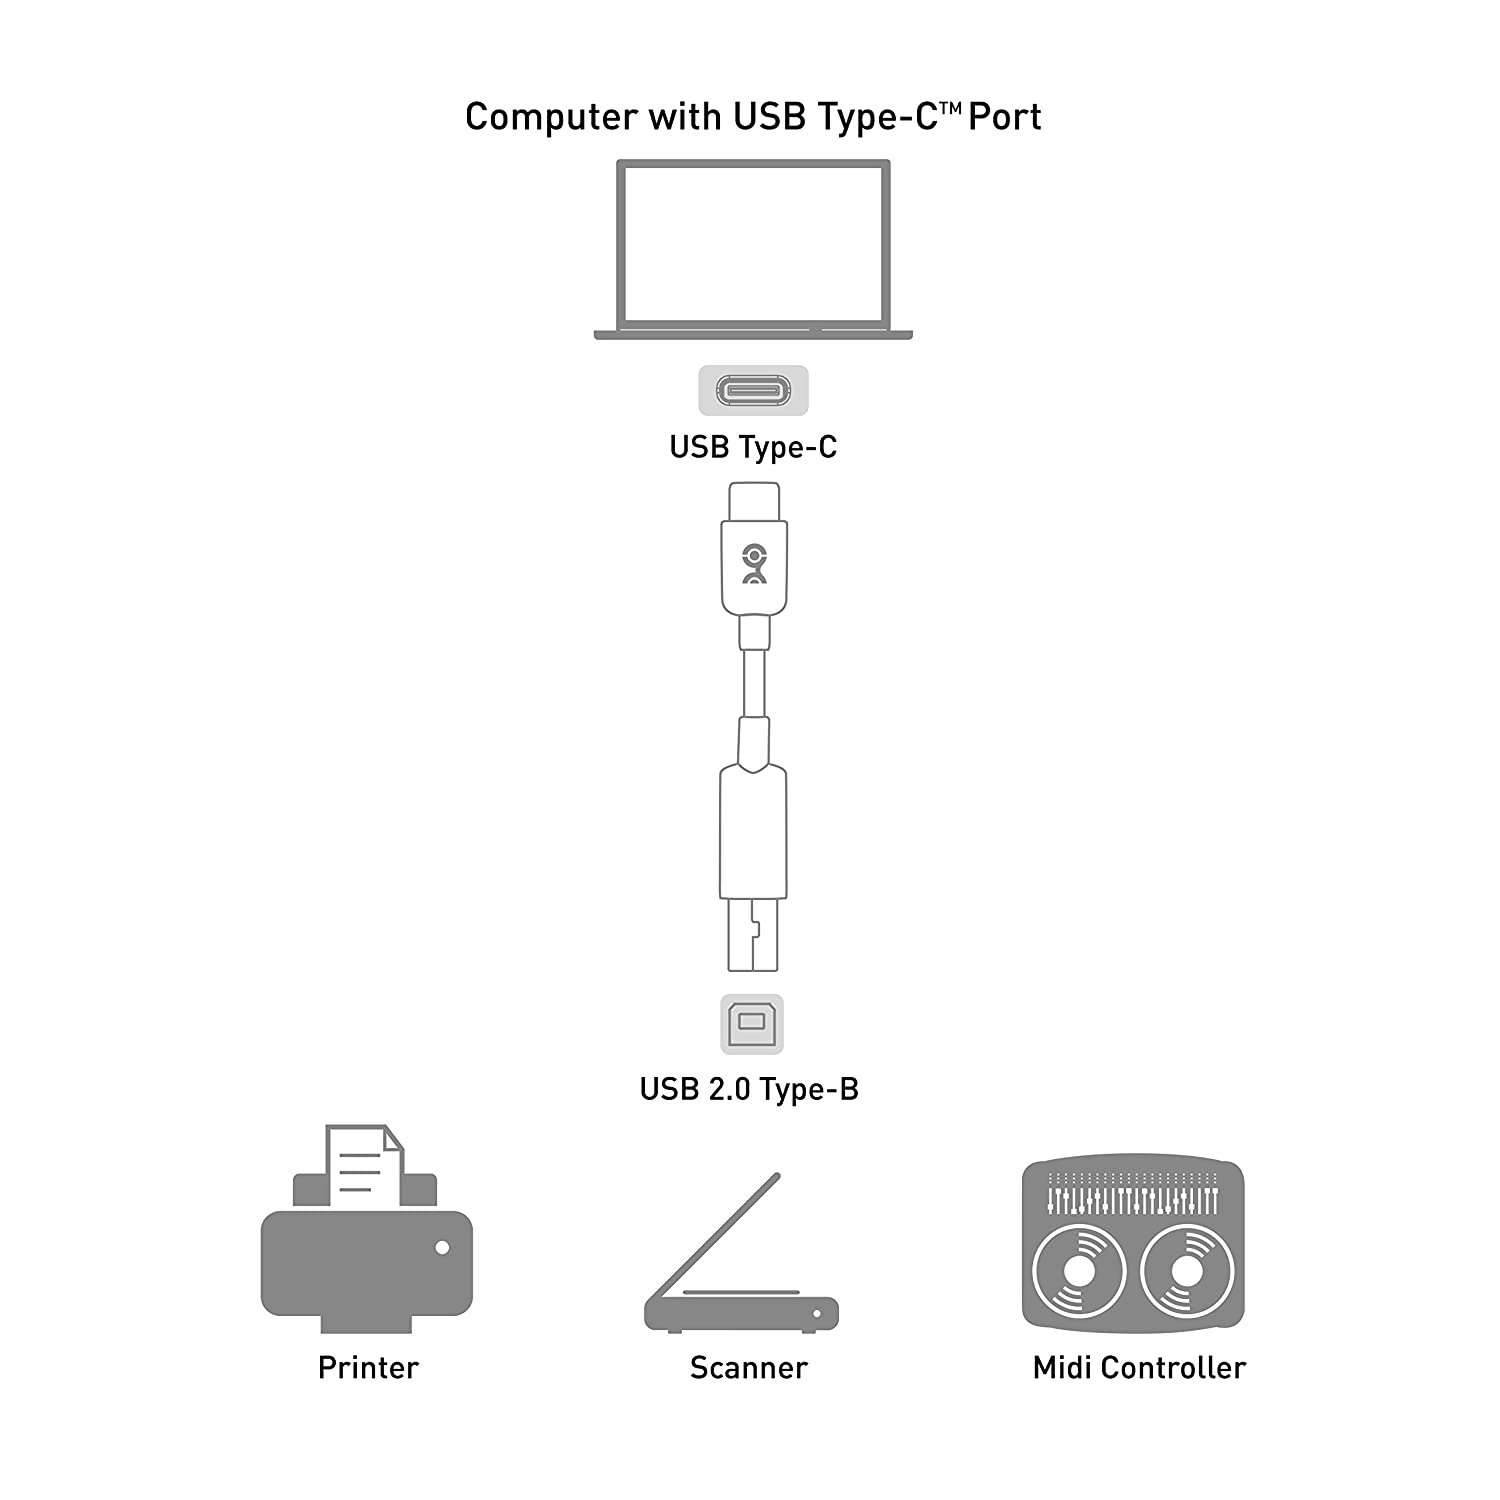 Cable Matters Usb C Printer To B 2 0 Connector Diagram Free Download Wiring Schematic In Black 66 Feet Computers Accessories